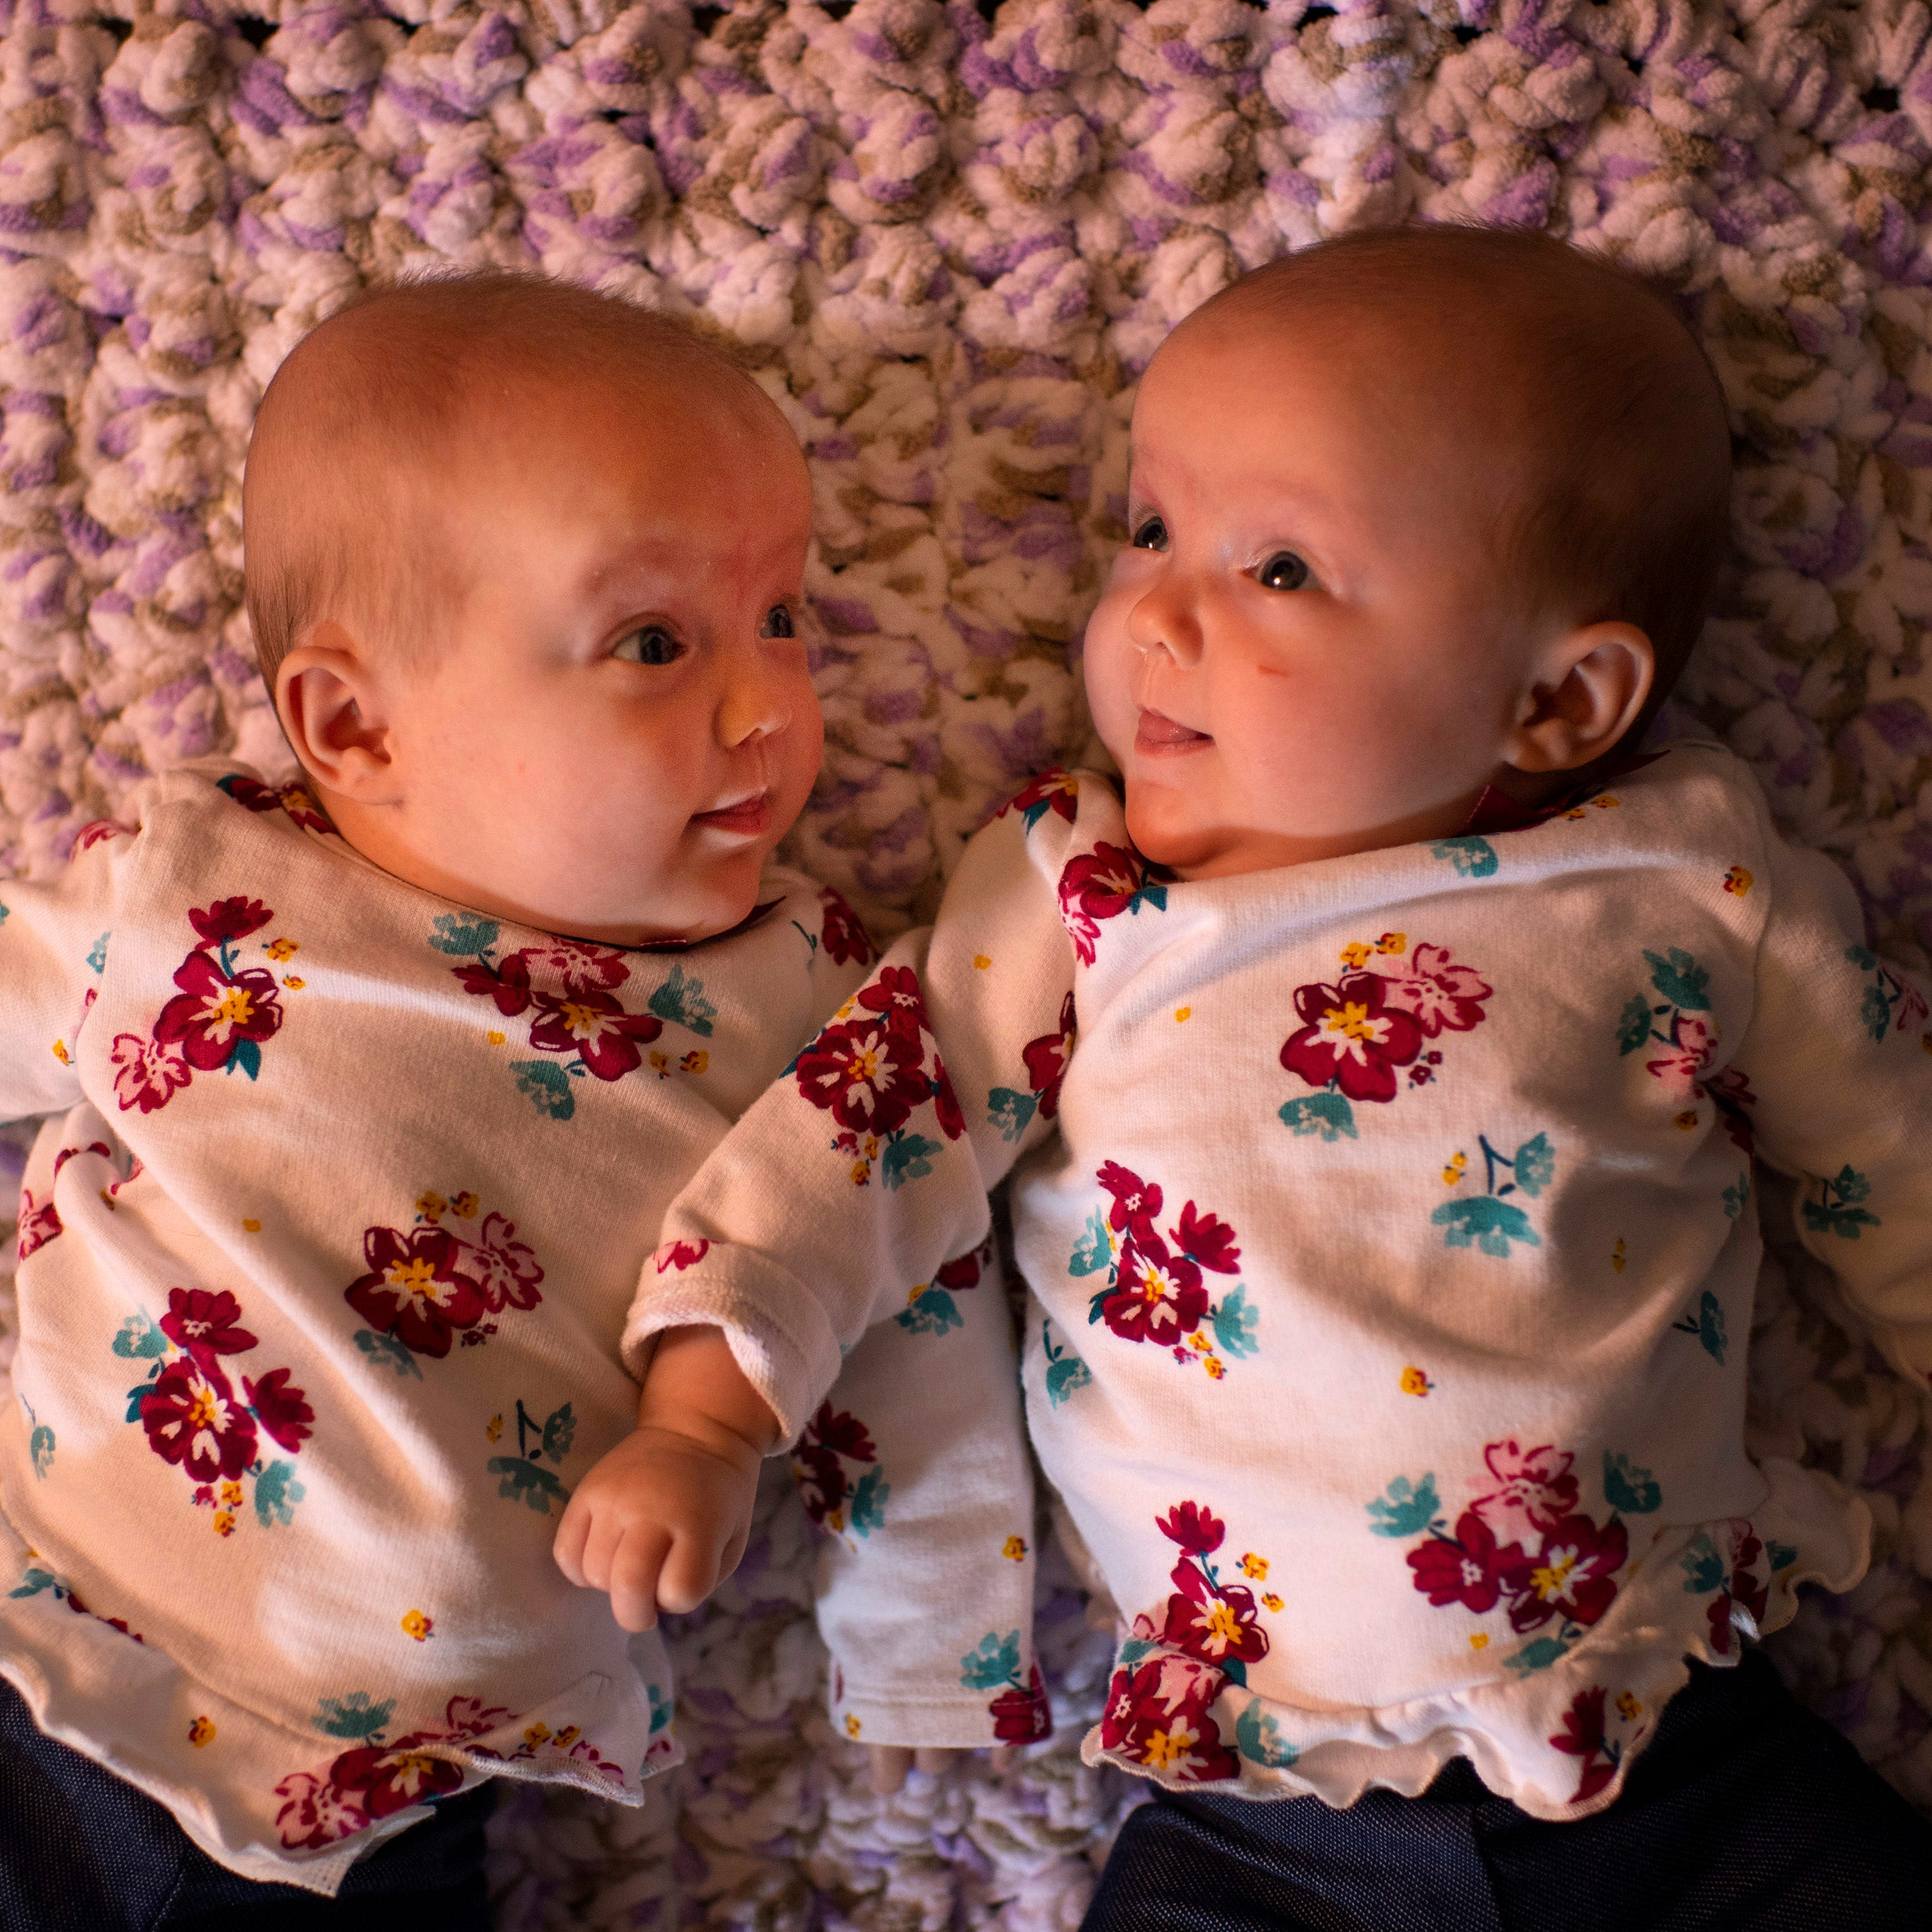 End of the rainbow: Newburgh family welcomes rare twins after journey of loss, hope